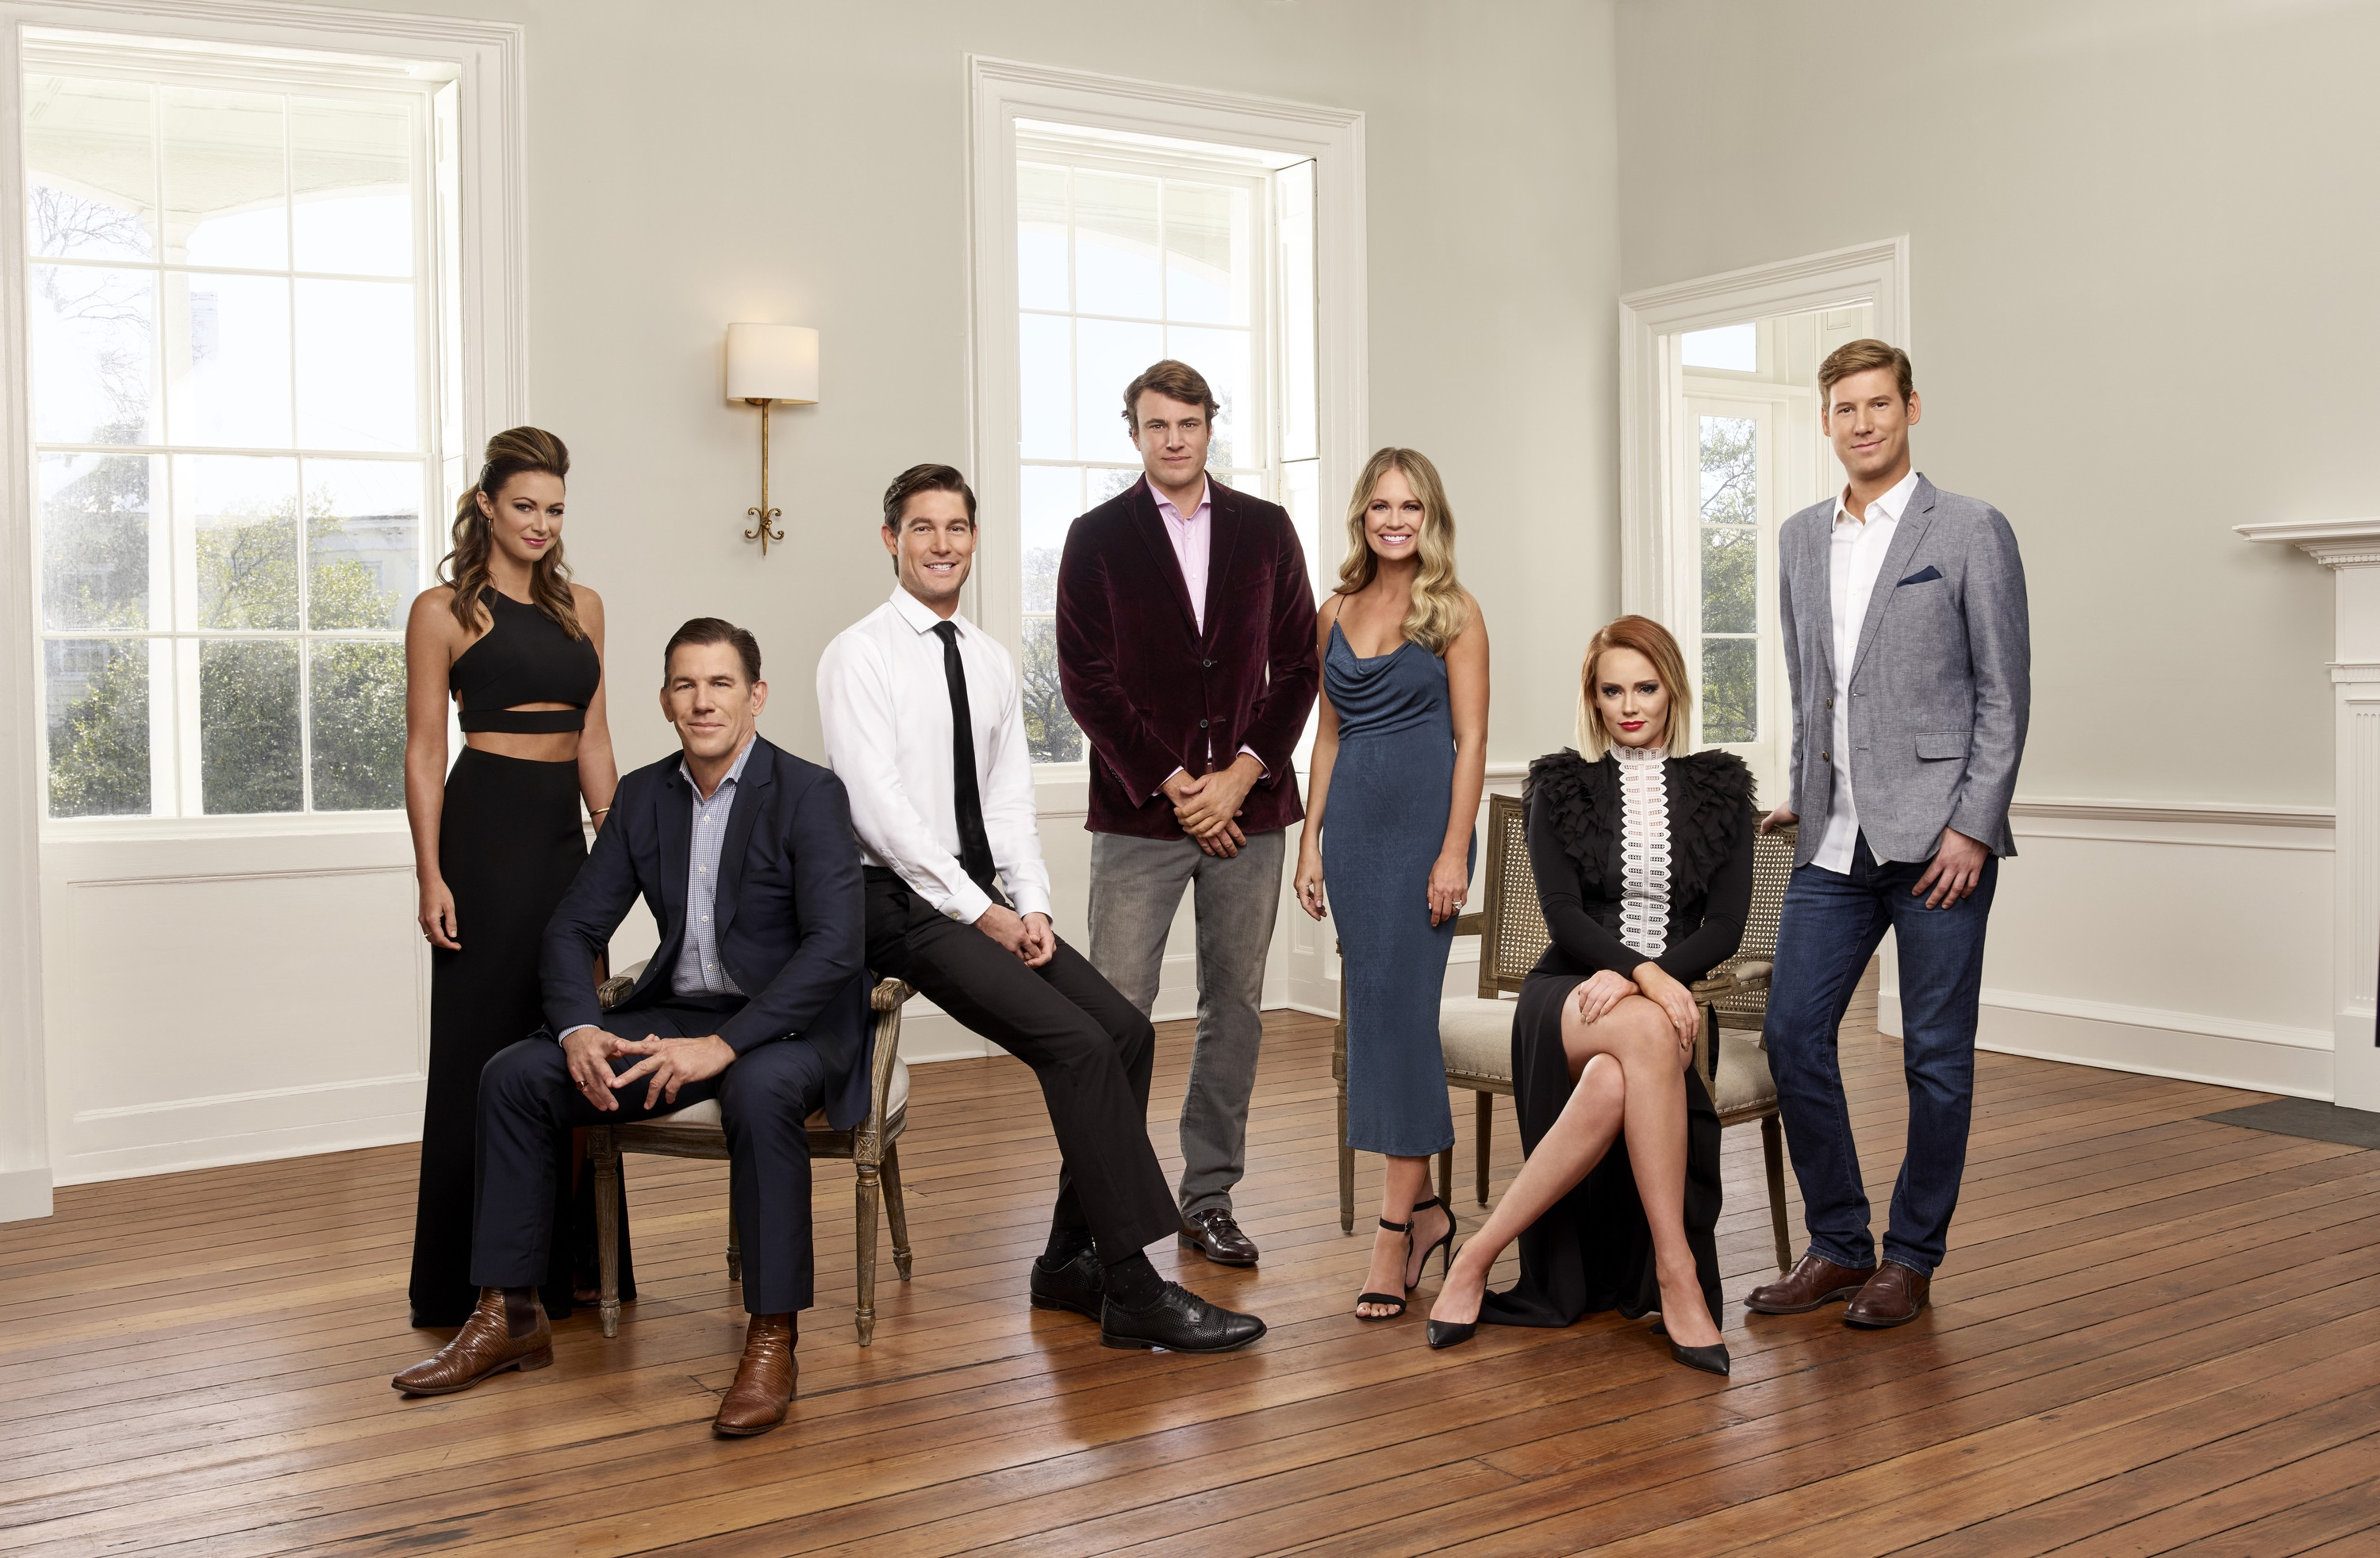 A photo of the cast of Southern Charm's Season 5